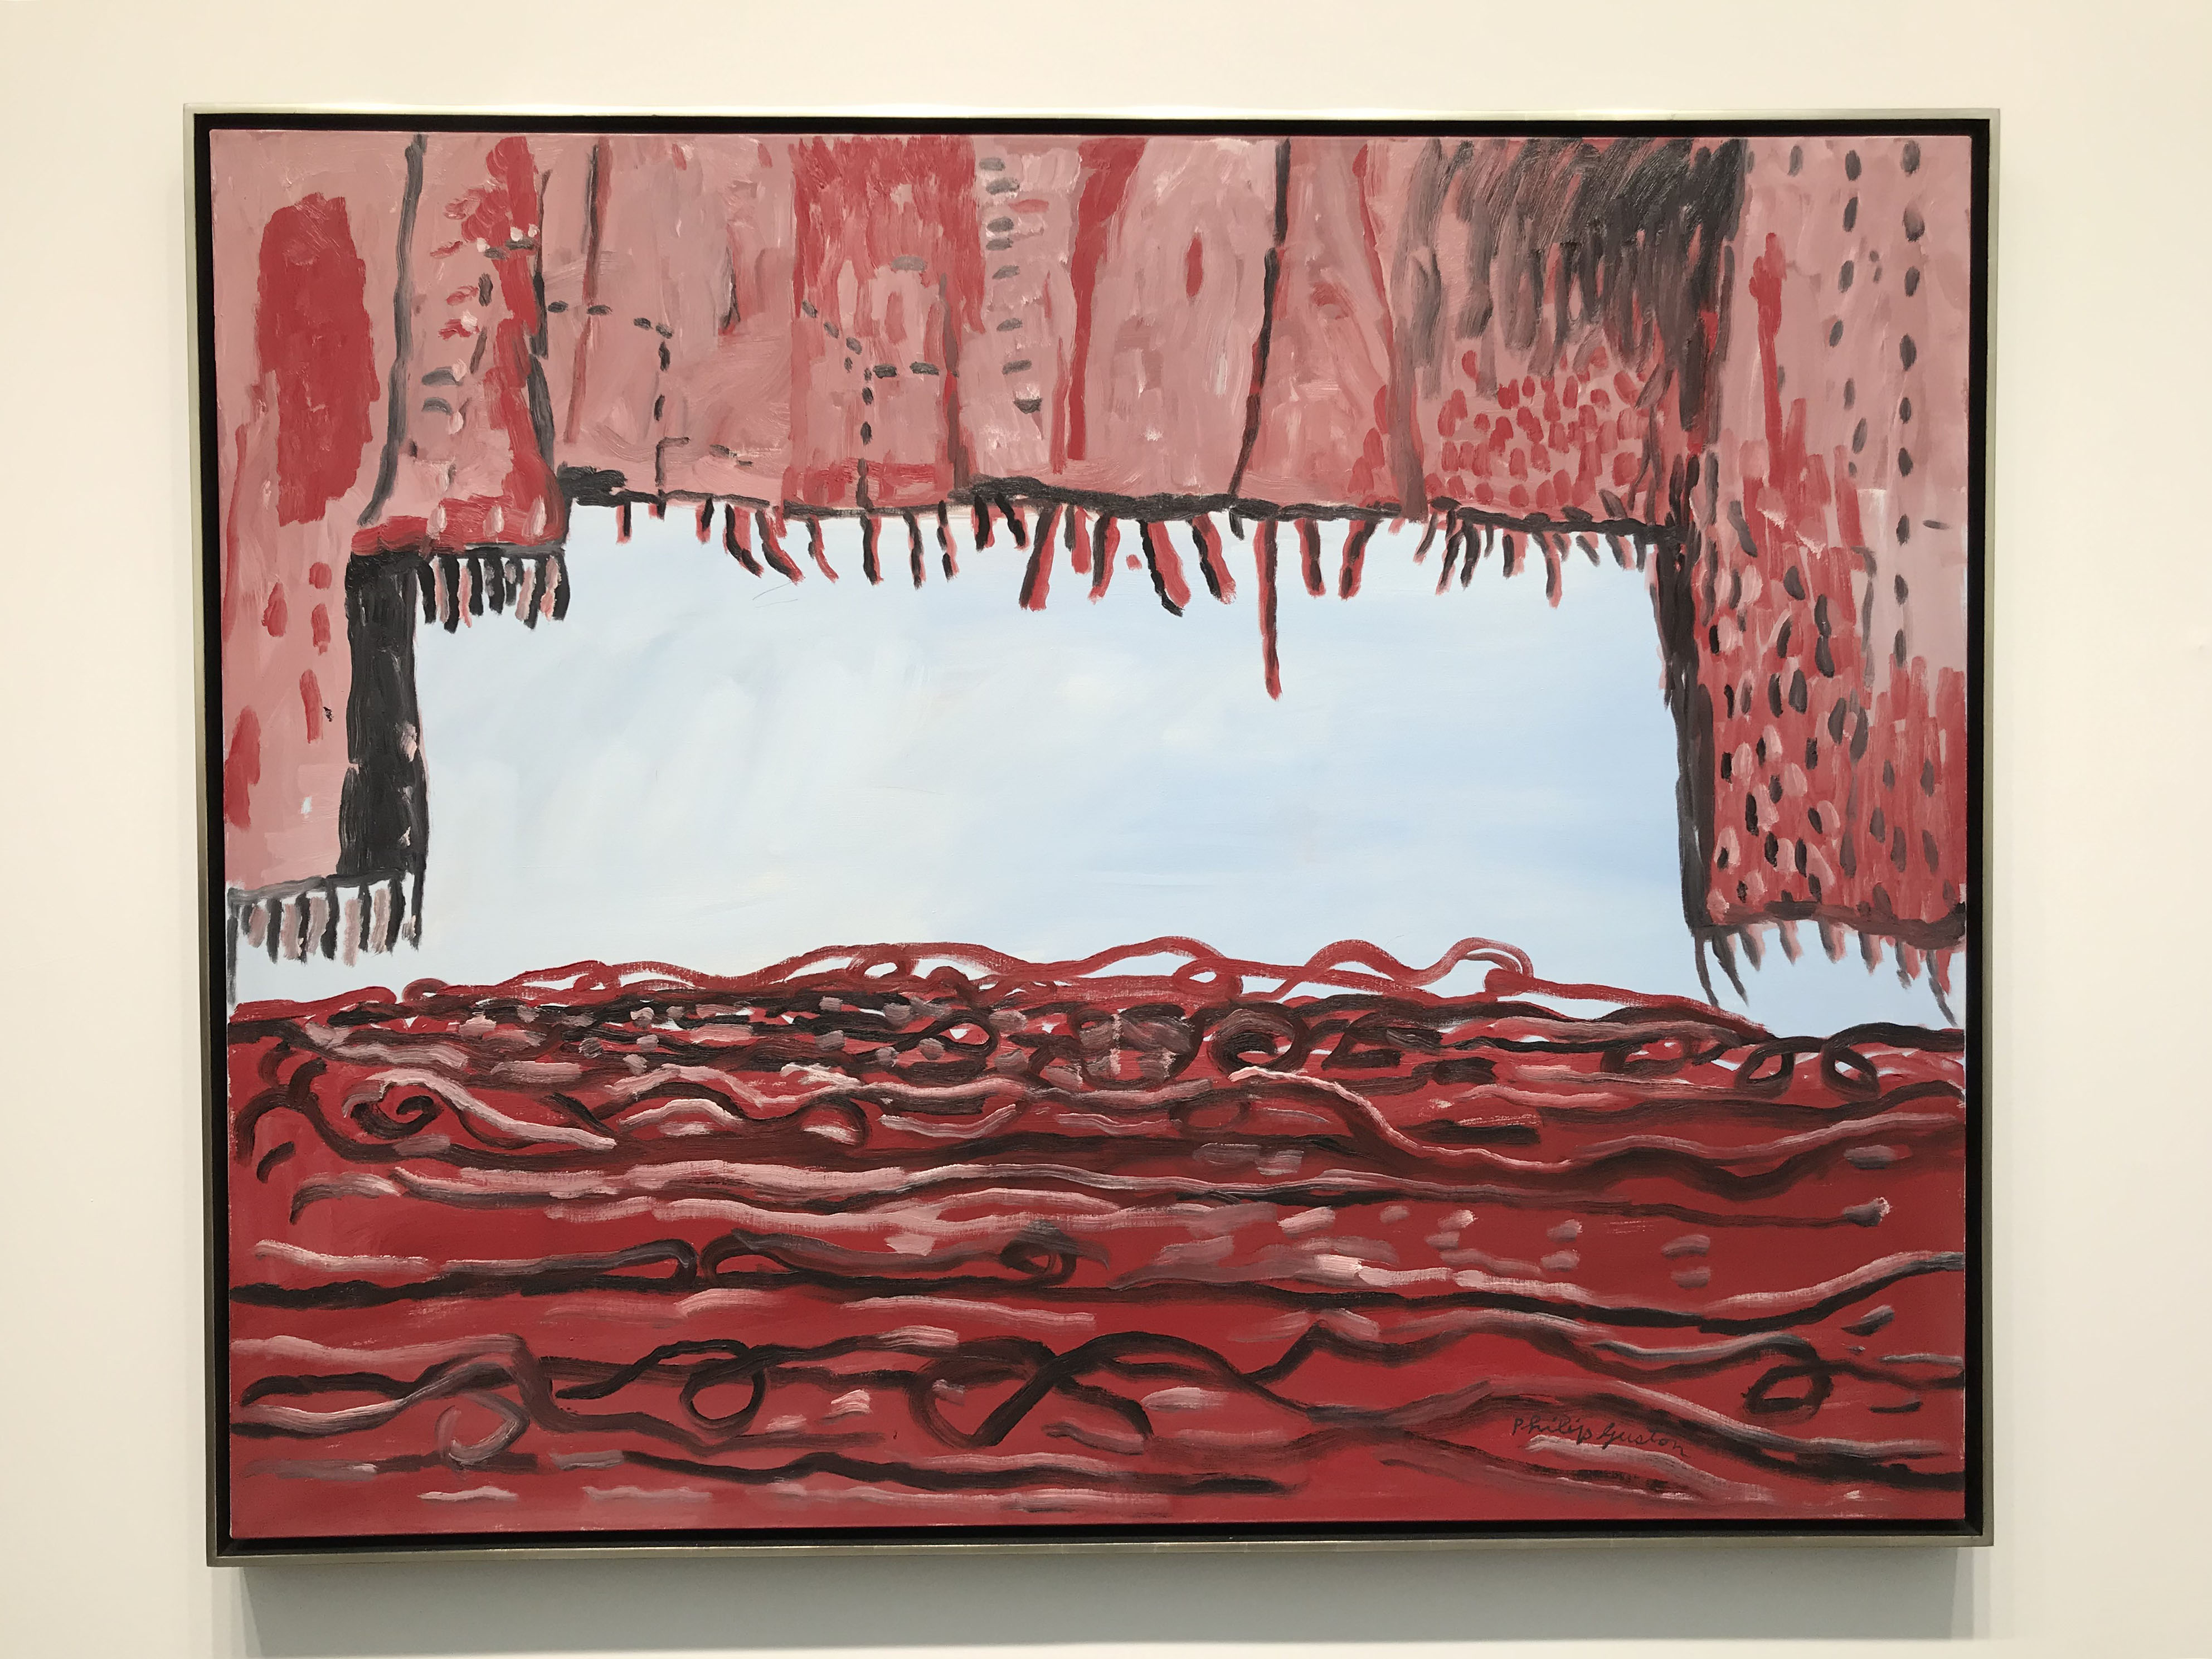 work by Philip Guston shown by Hauser and Wirth